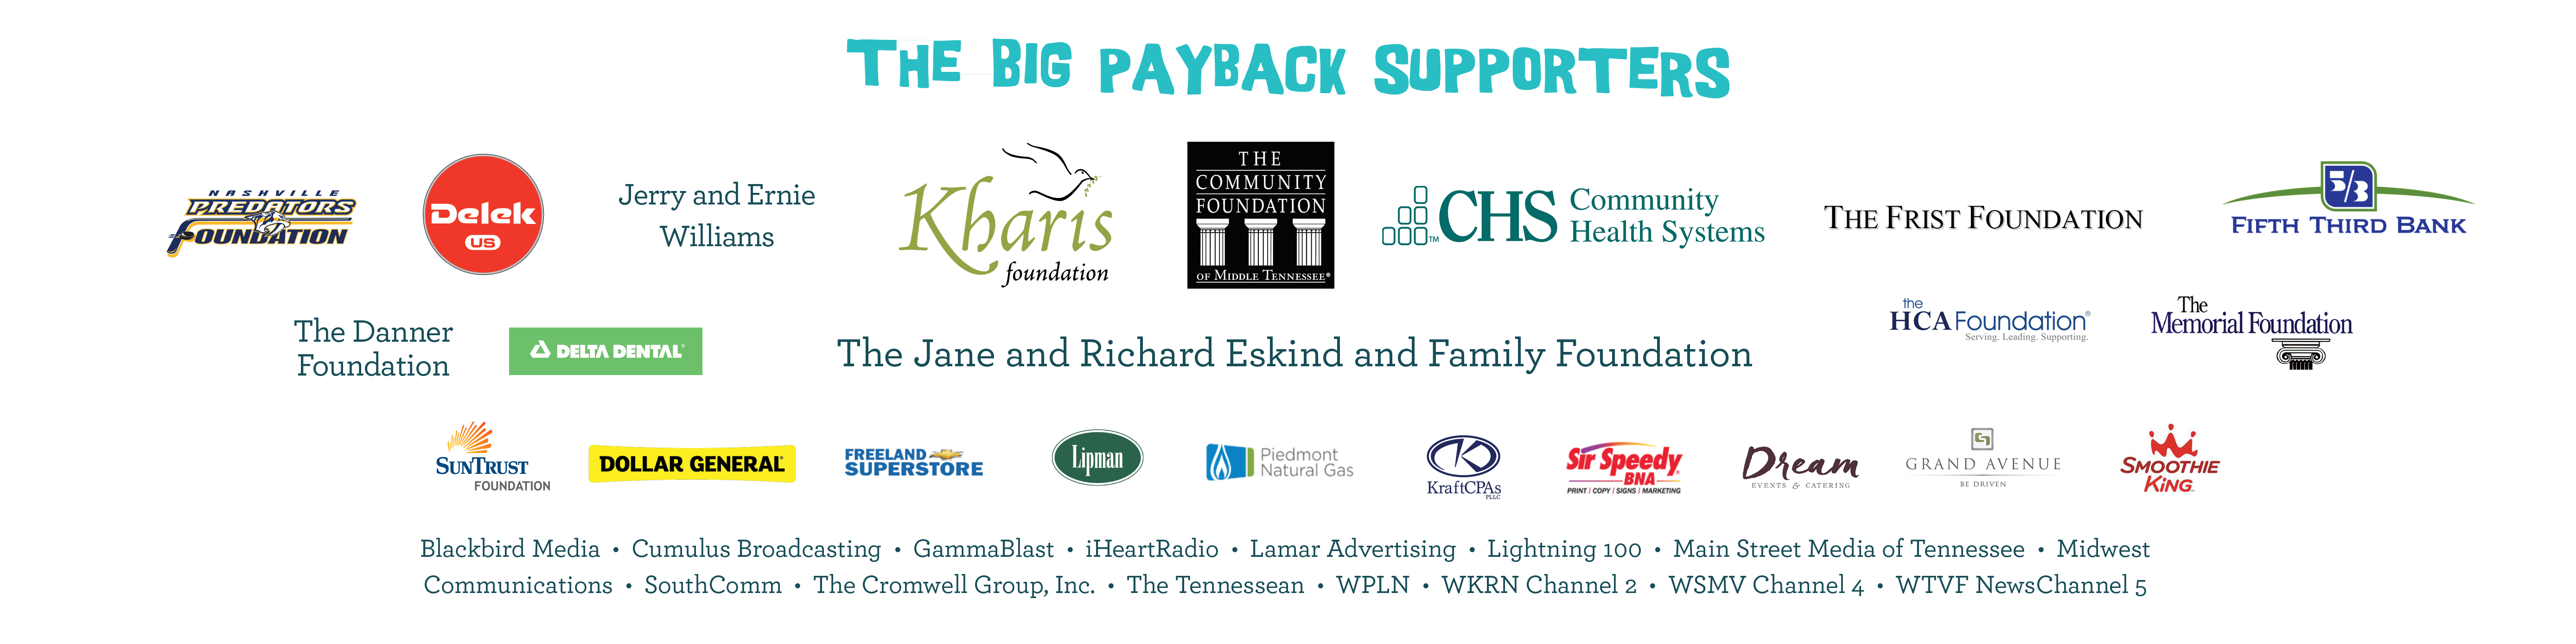 2018 Sponsors of The BigPayback